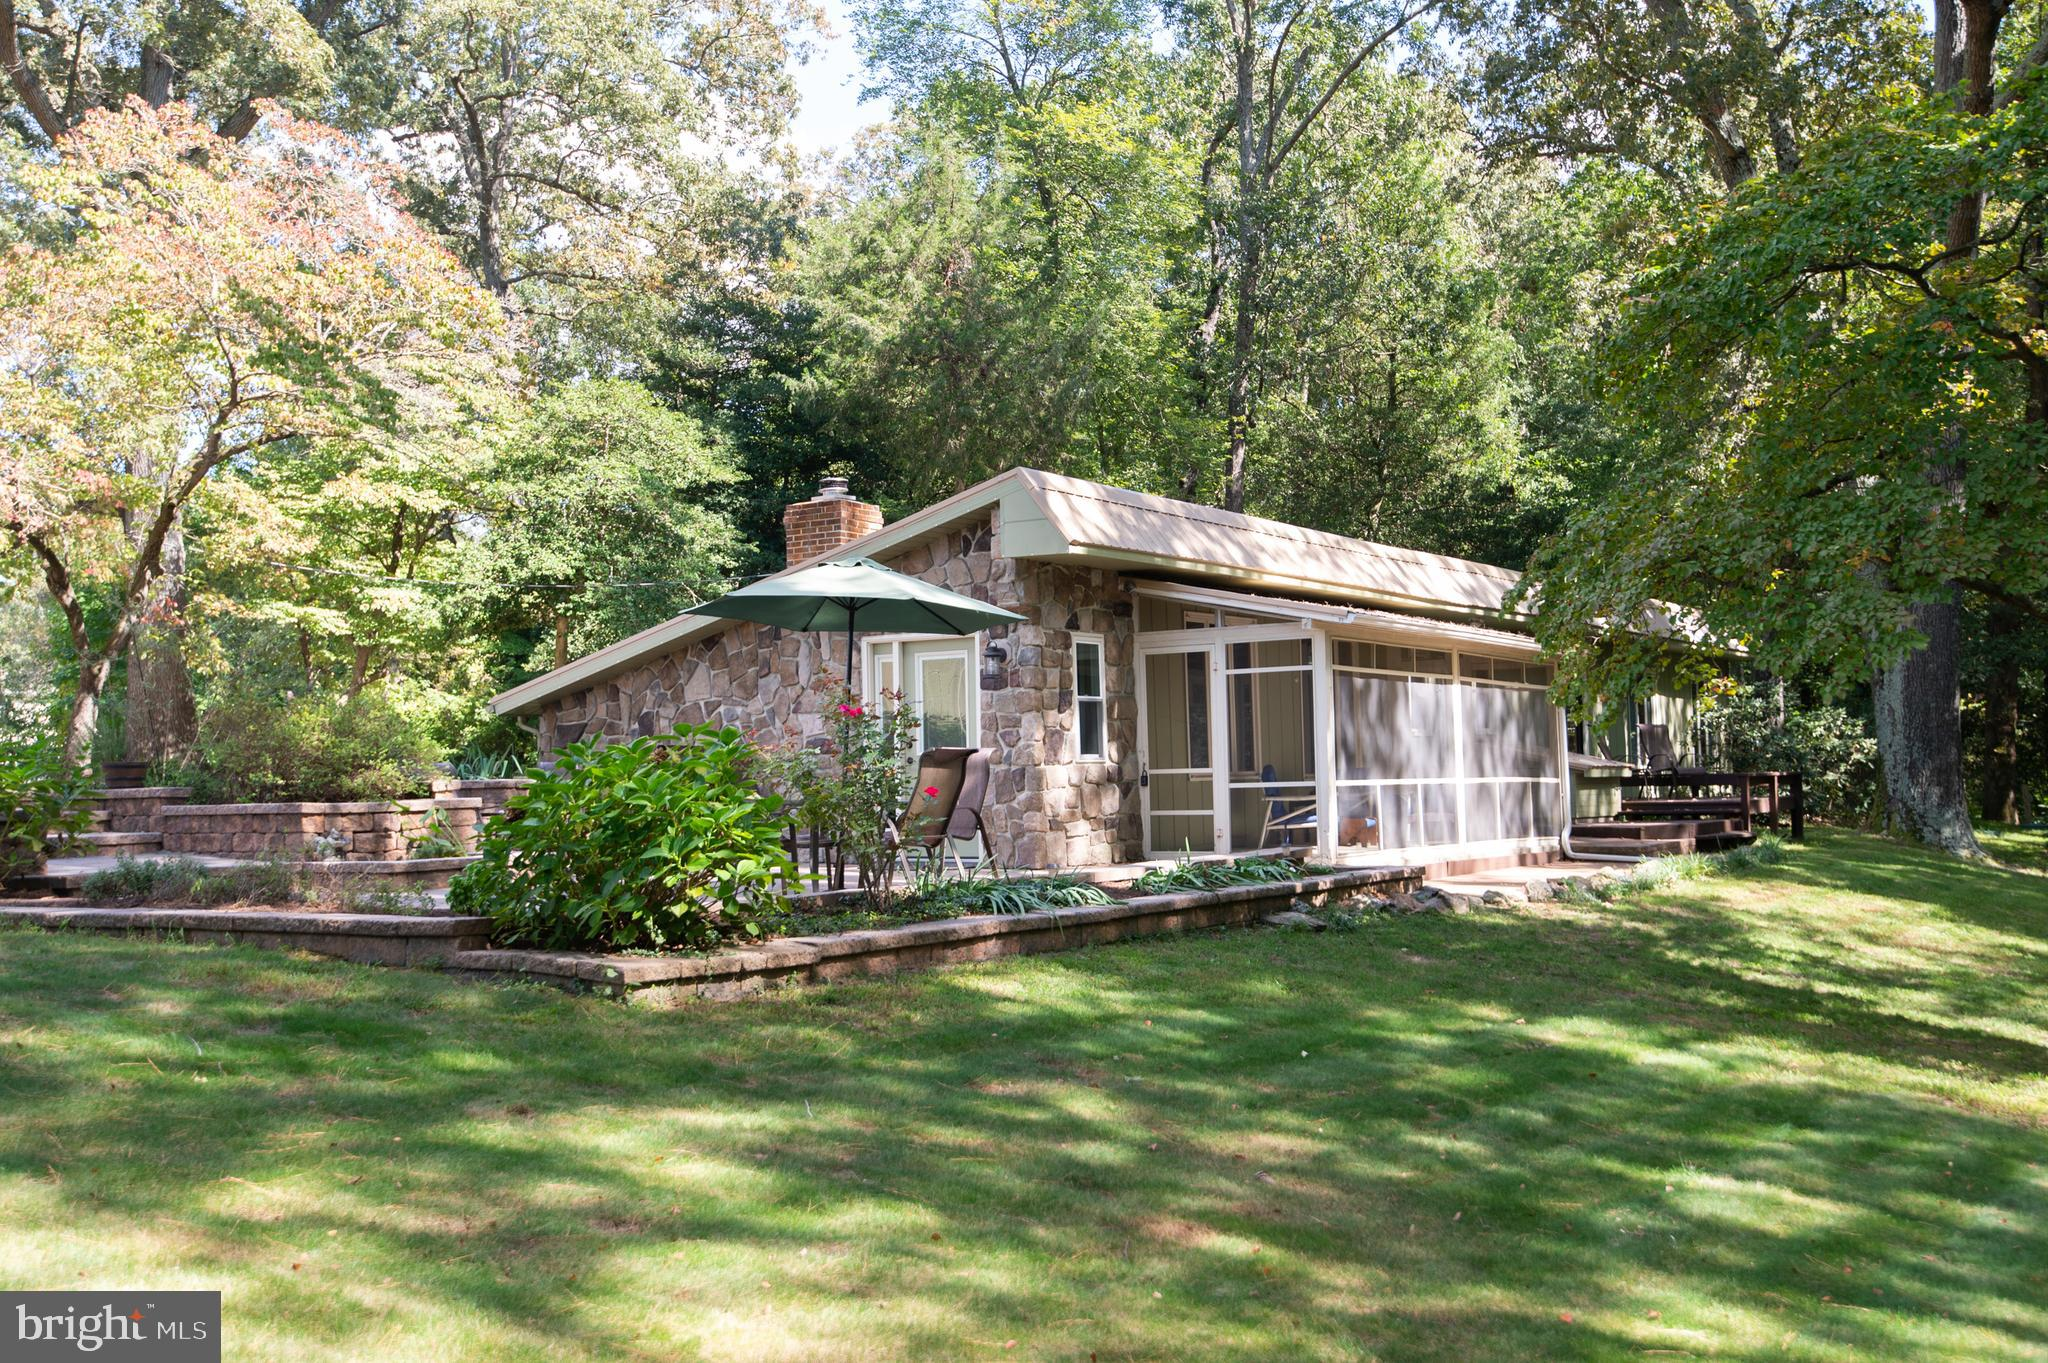 Quintessential eastern shore retreat.  Rustic knotty pine walls and new floors , updated kitchen and baths. Stepped hardscaping and planters overlook woods with walking path.  Screen porch. Shed- shop has 220 electric, could be cool home office.  Lots to see here folks. Lot is larger than it appears.